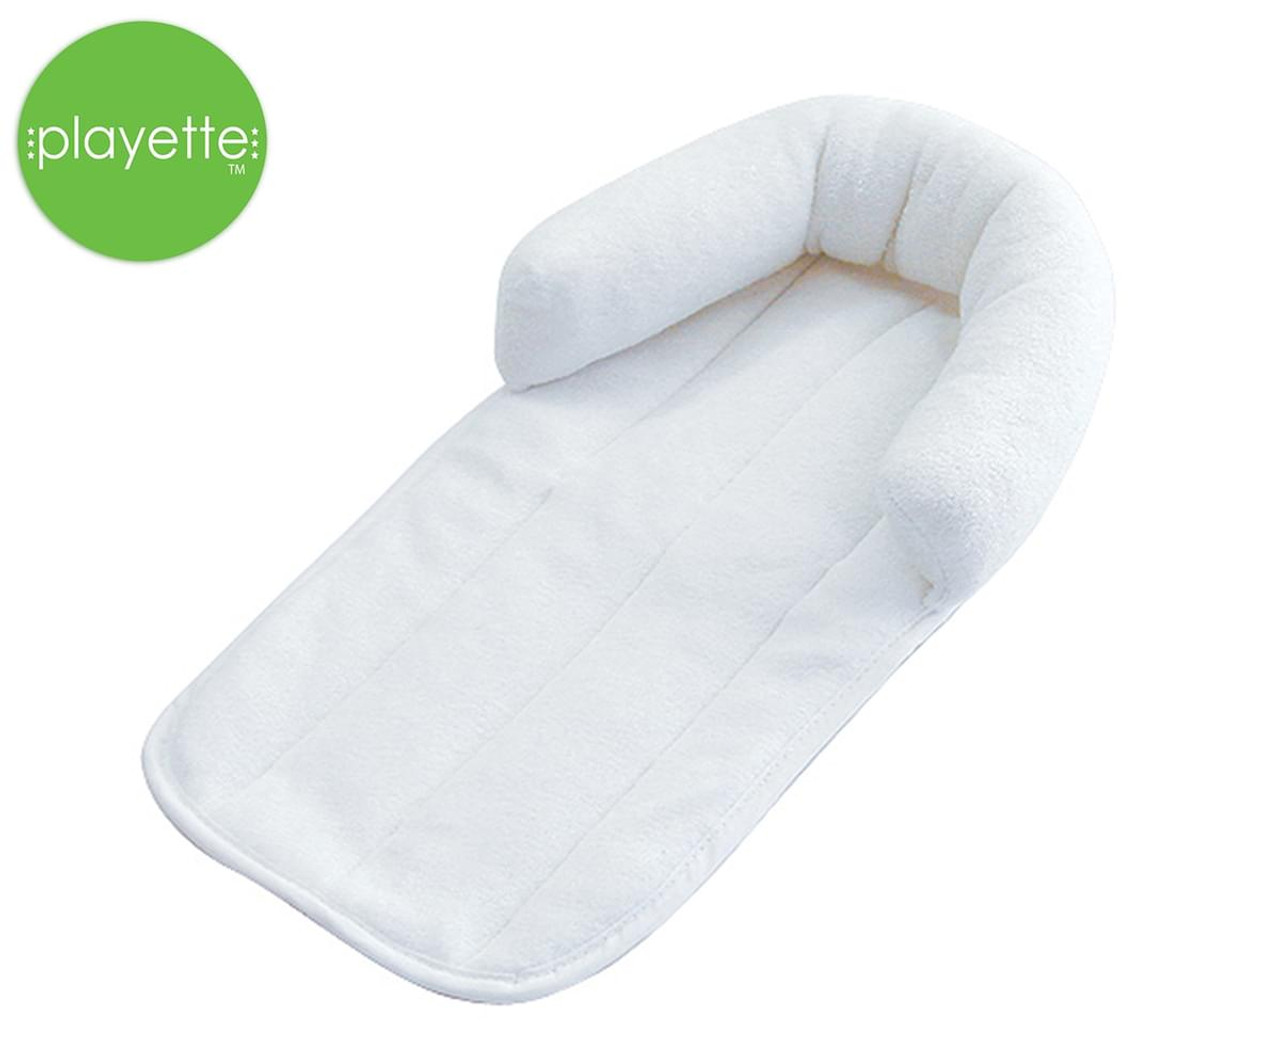 Playette Preemie Head Support at Baby Barn Discounts